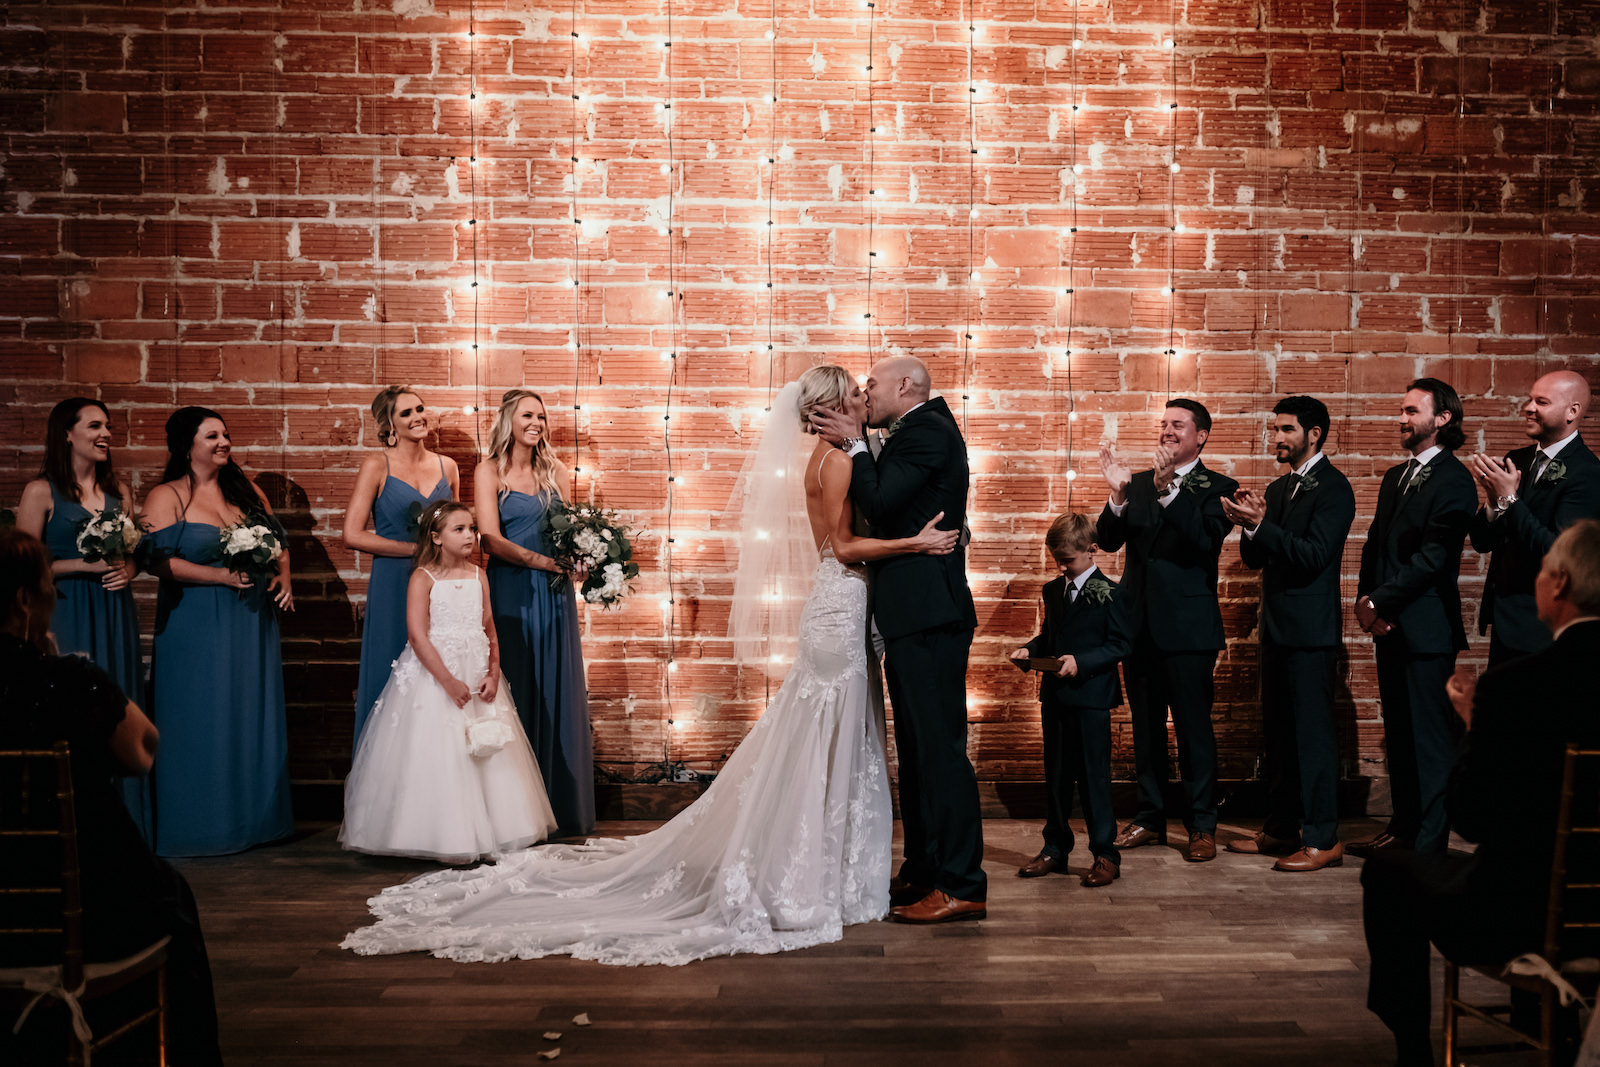 Florida Bride and Groom Intimate Exchange and Kiss During Wedding Ceremony, Interior Summer Ceremony with Exposed Red Brick Wall and String Lighting   Historic Tampa Bay Industrial Wedding Venue NOVA 535 in Downtown St. Petersburg